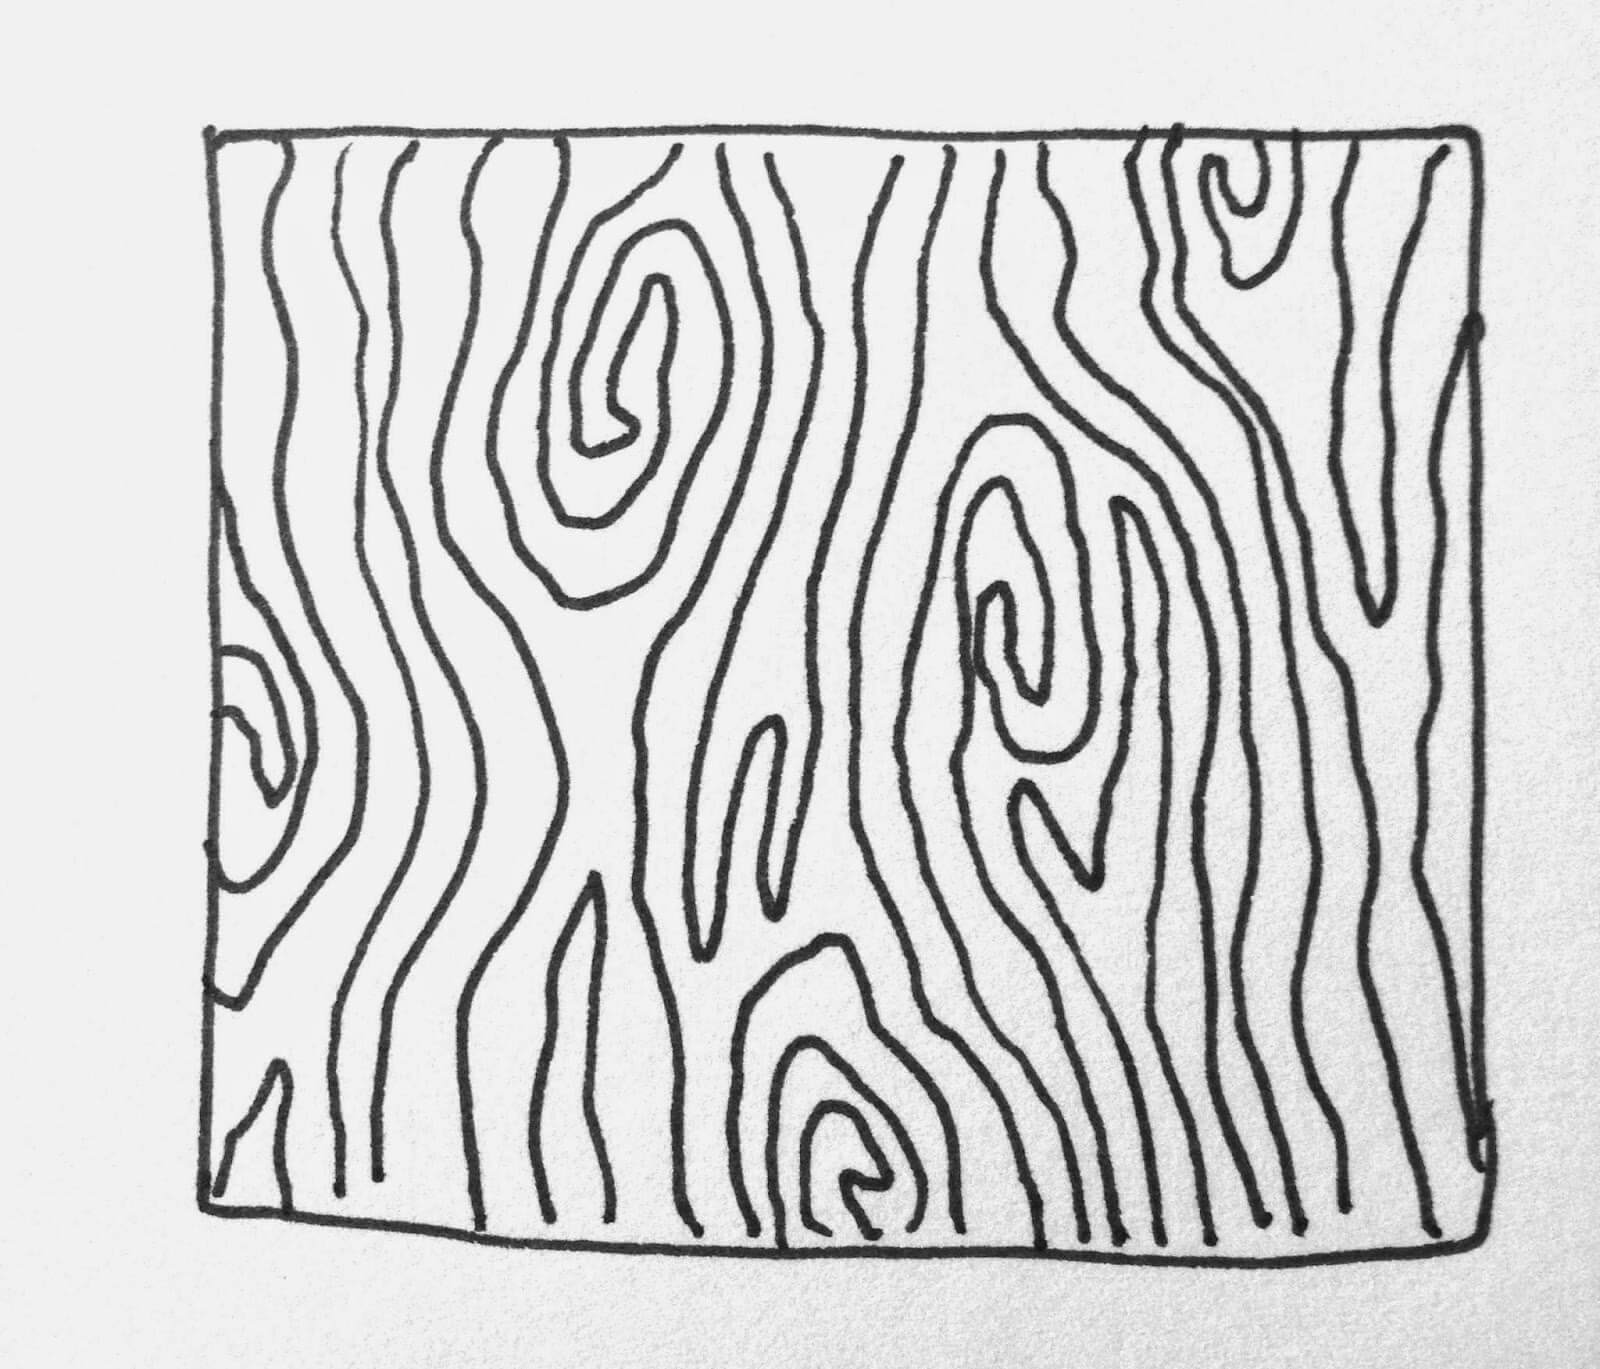 wood line drawing at getdrawings com free for personal use wood